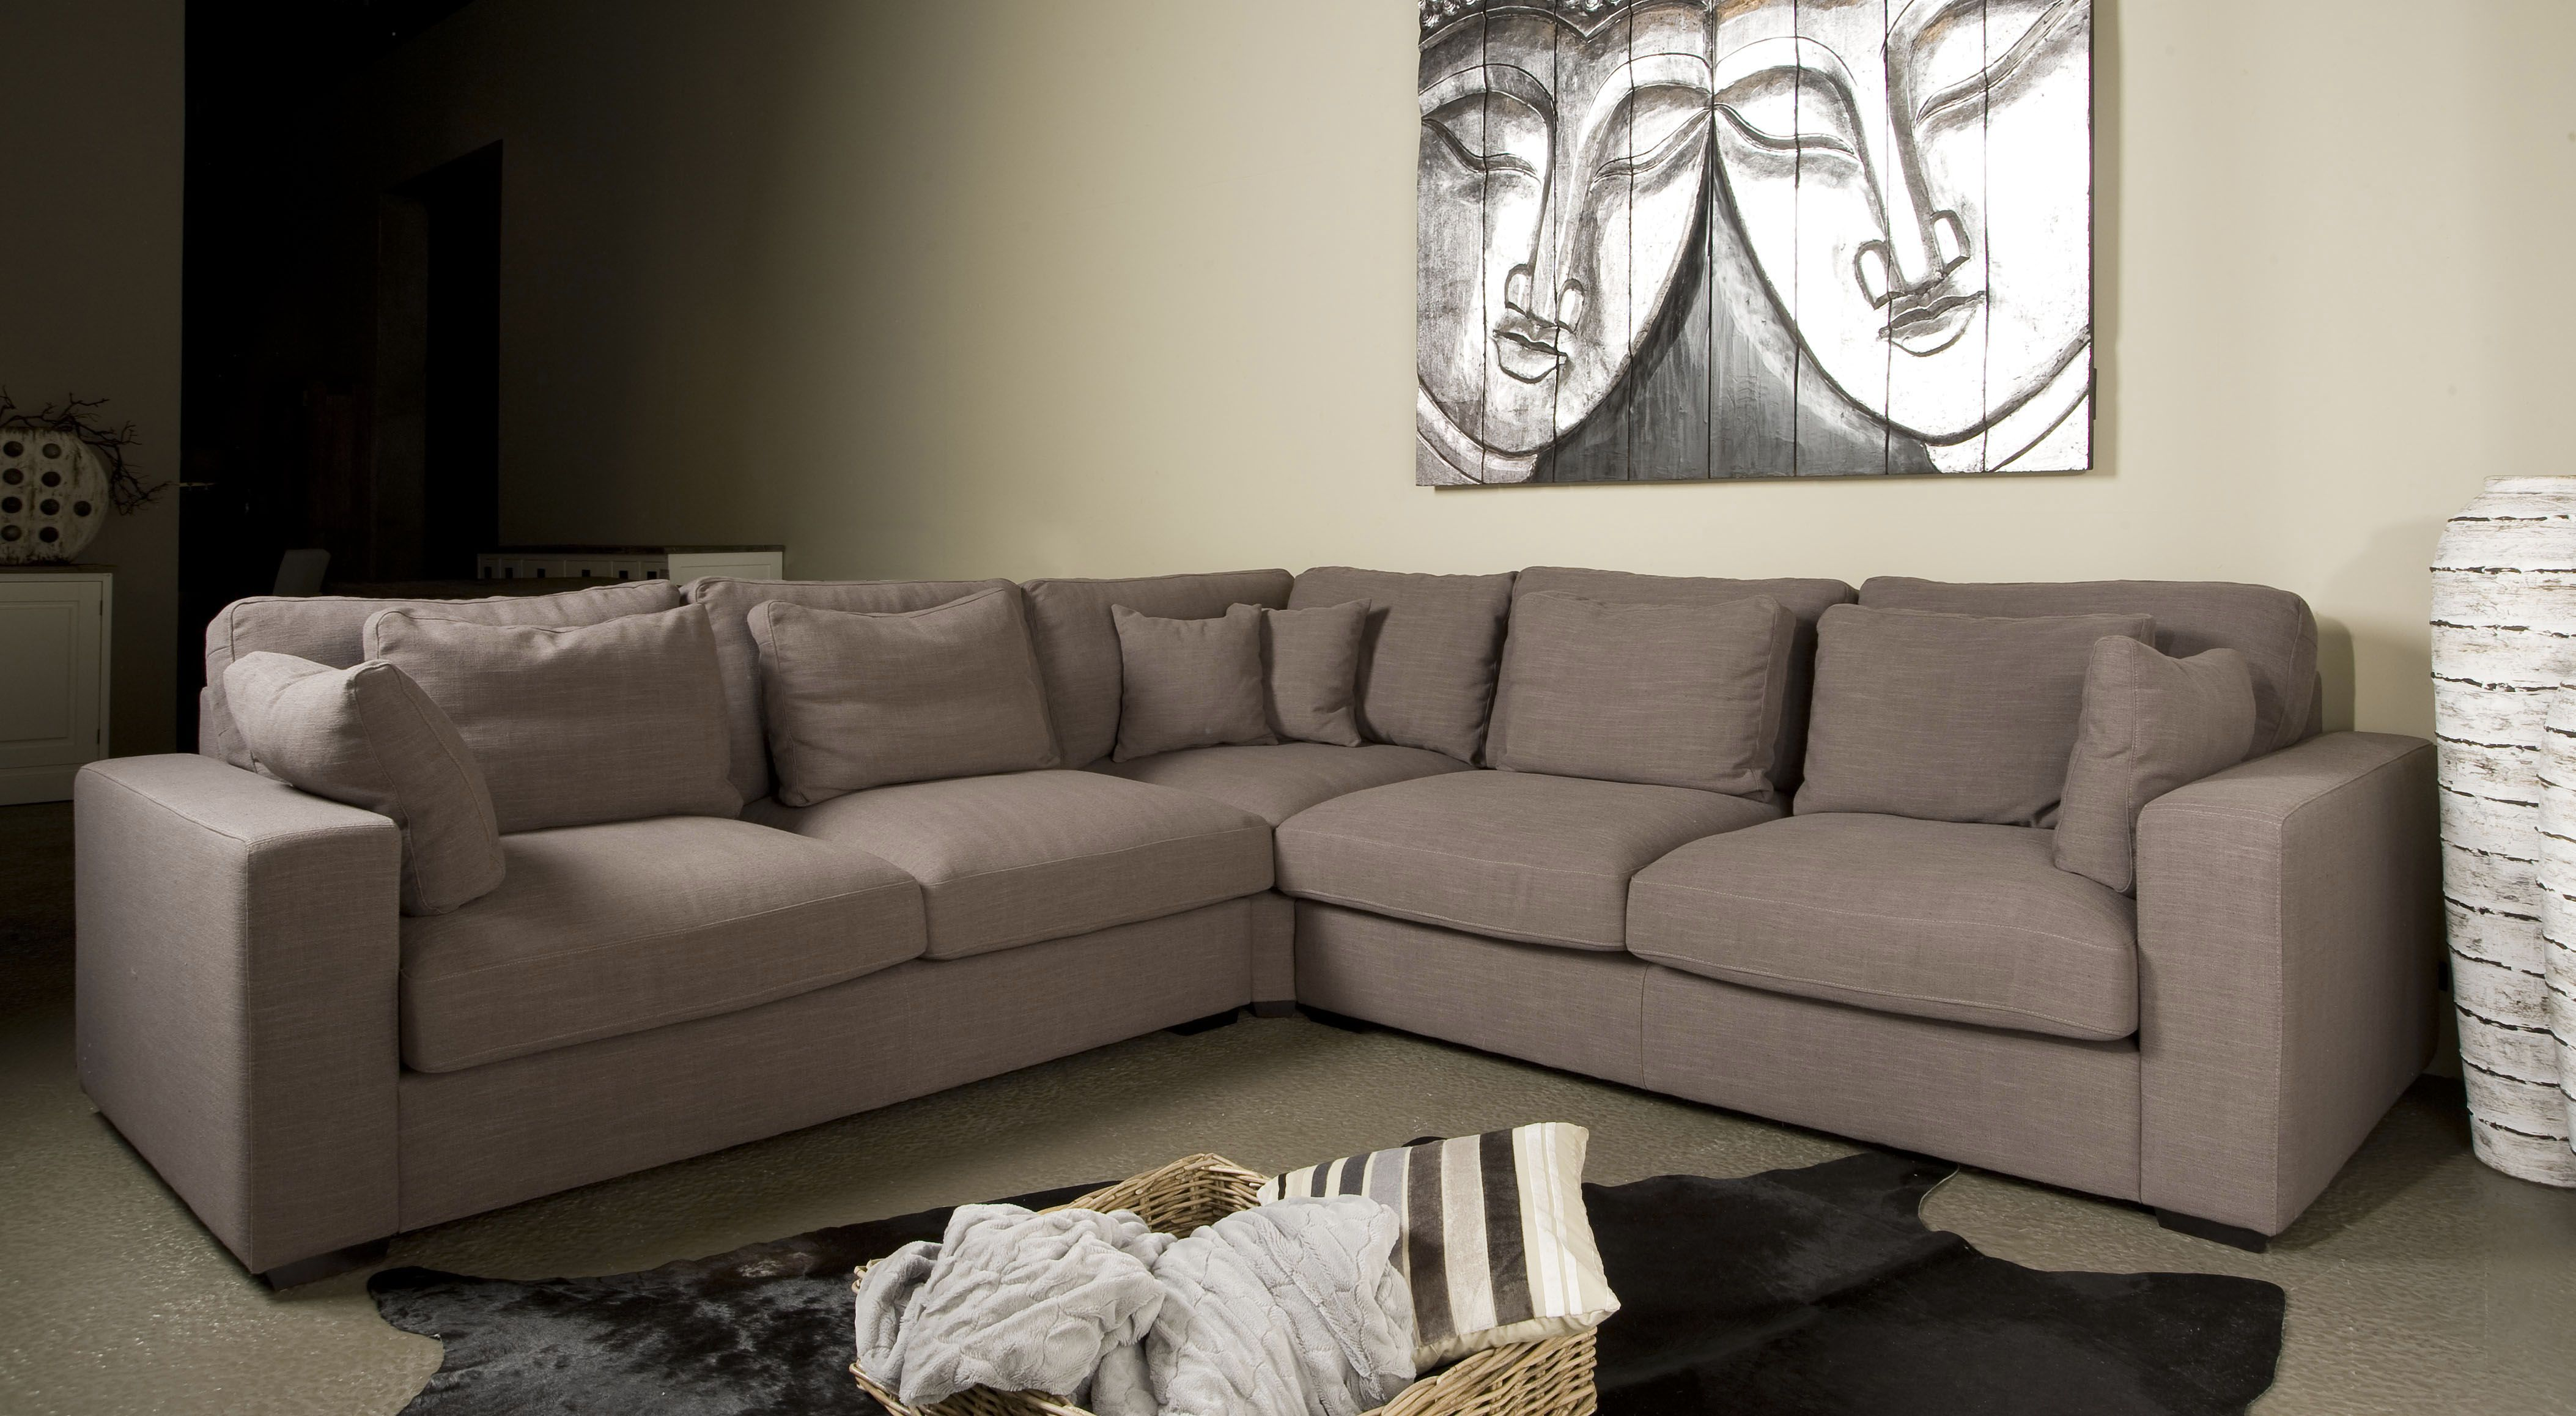 Urban Sofa Banken Primabelle Microgaren Good Hoekbank Primabelle Softlux Of With